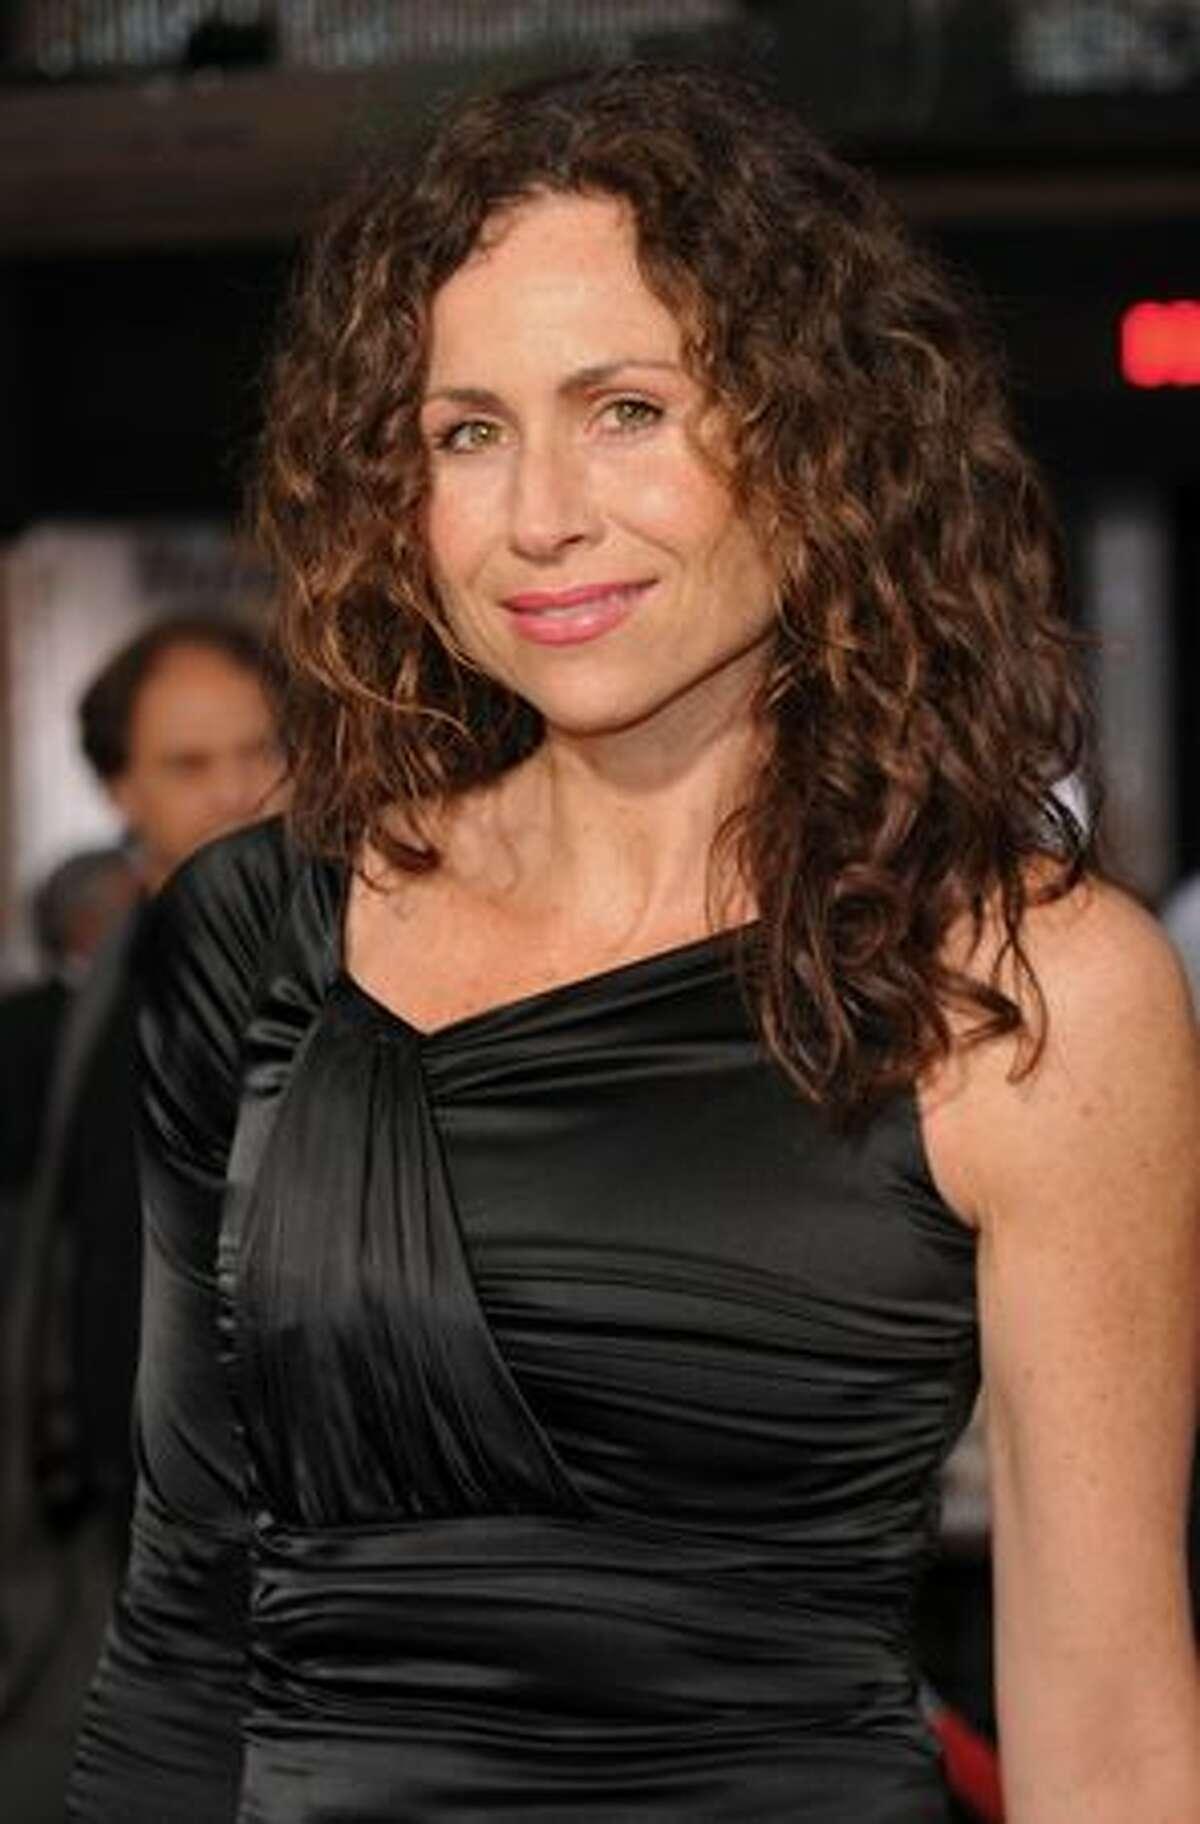 Actress Minnie Driver arrives at the premiere of 20th Century Fox's